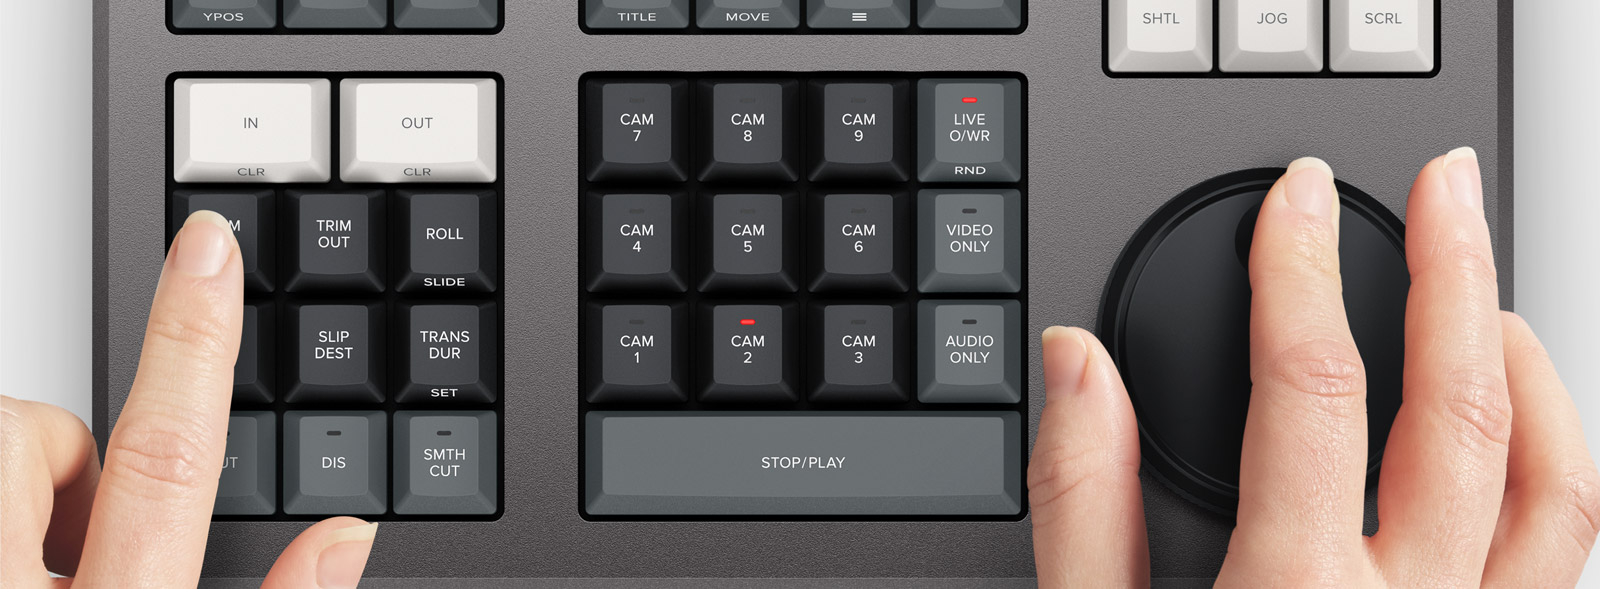 DaVinci Resolve Keyboard